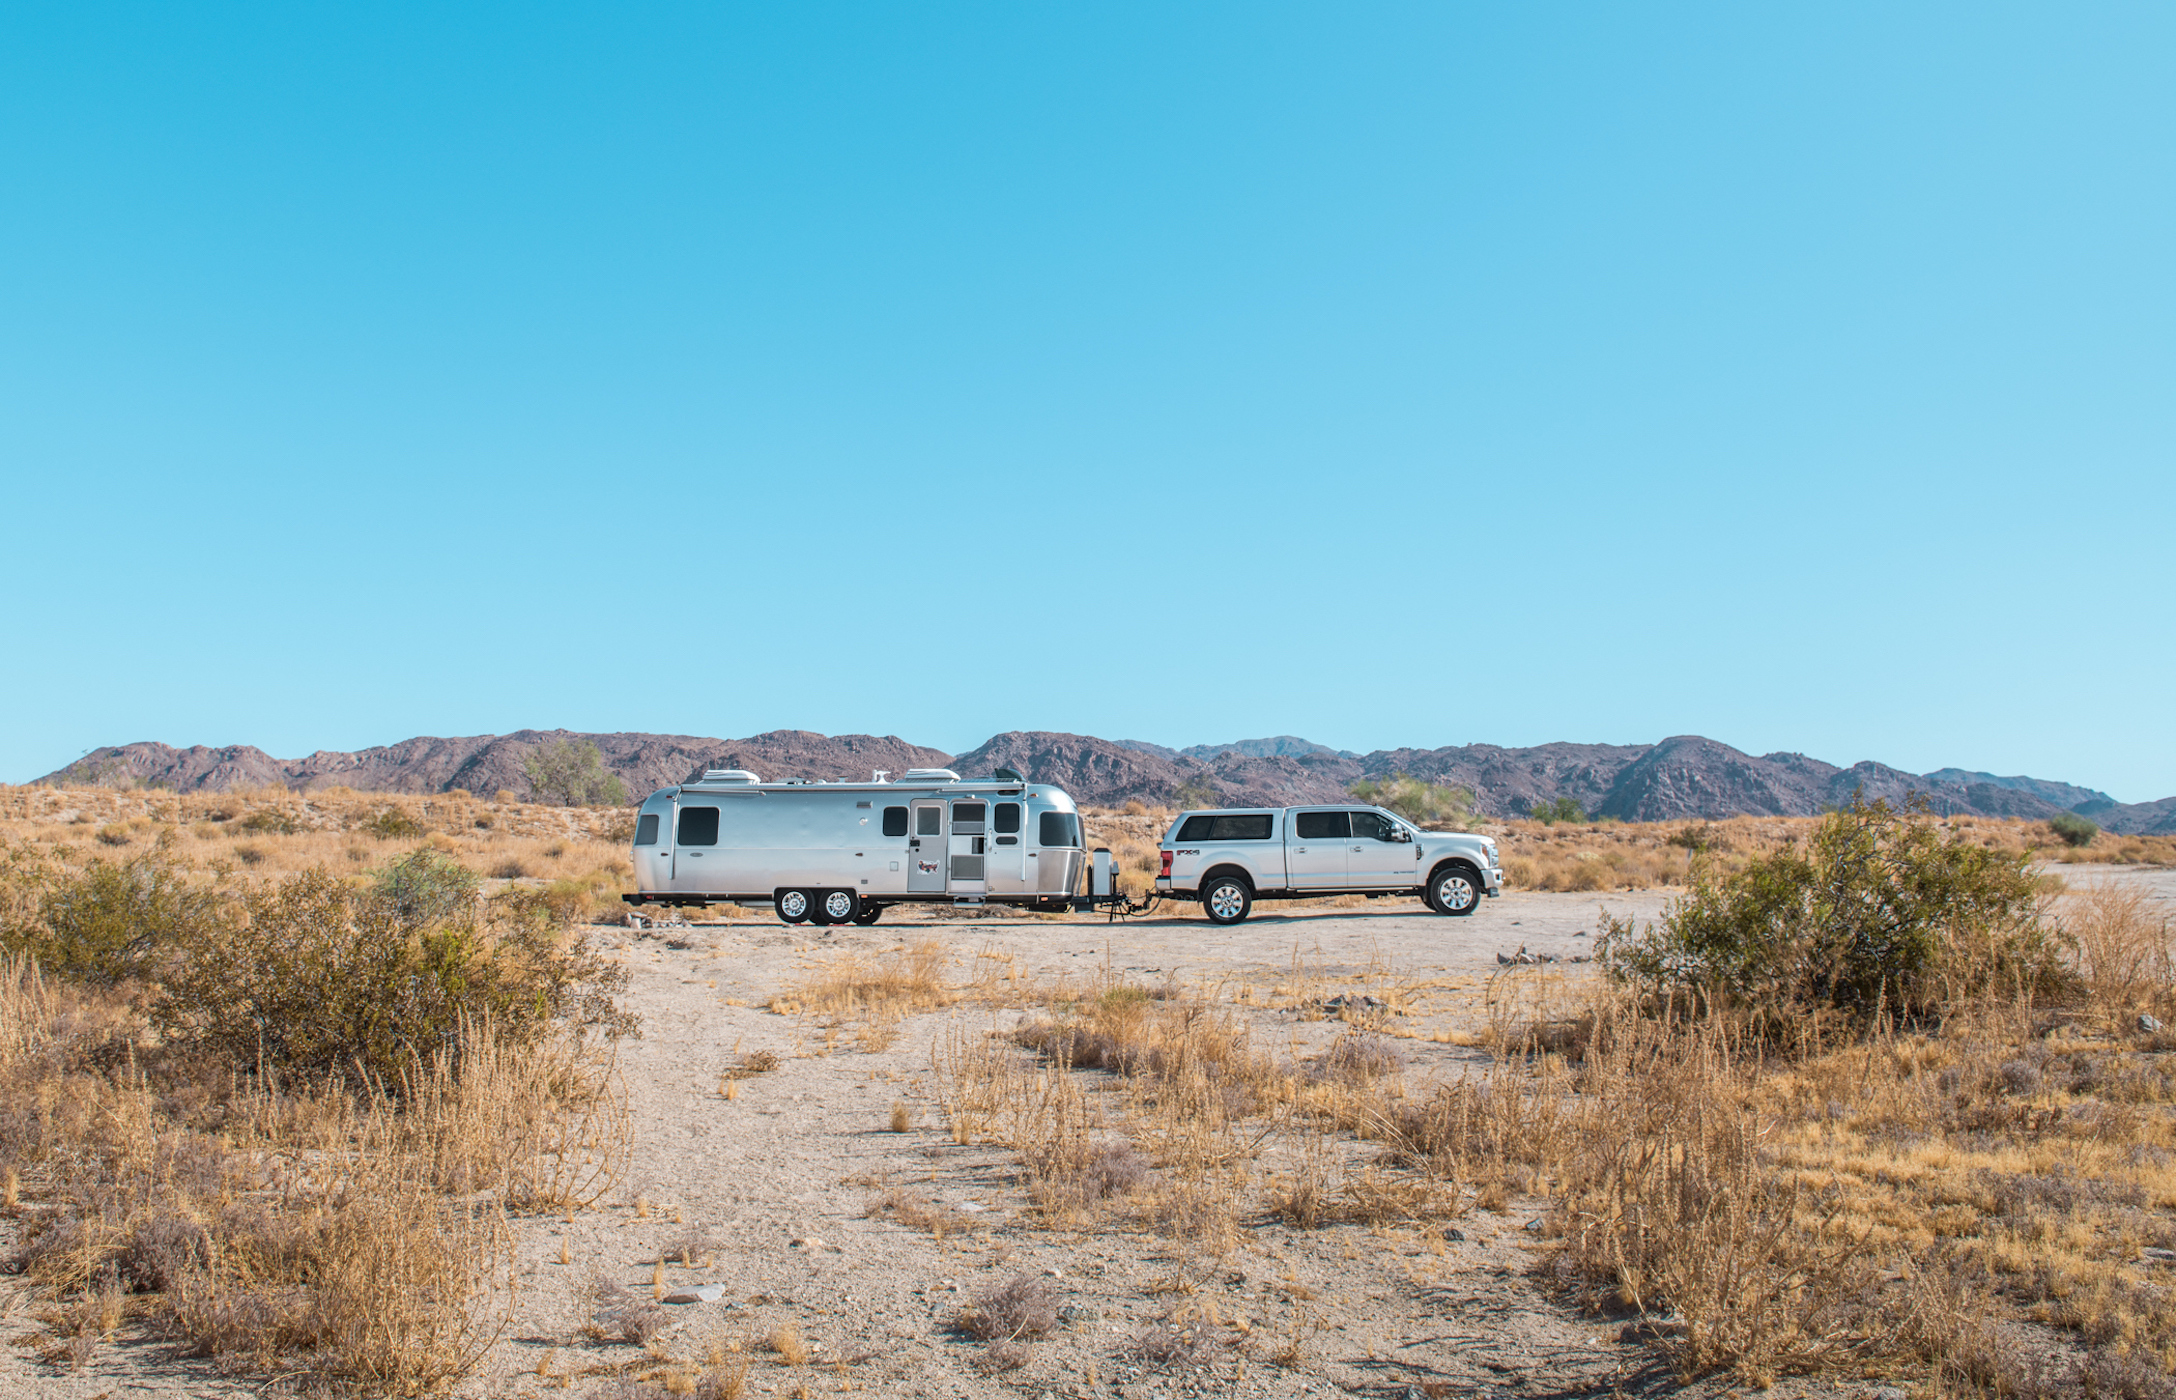 Boondocking at Joshua Tree National Park